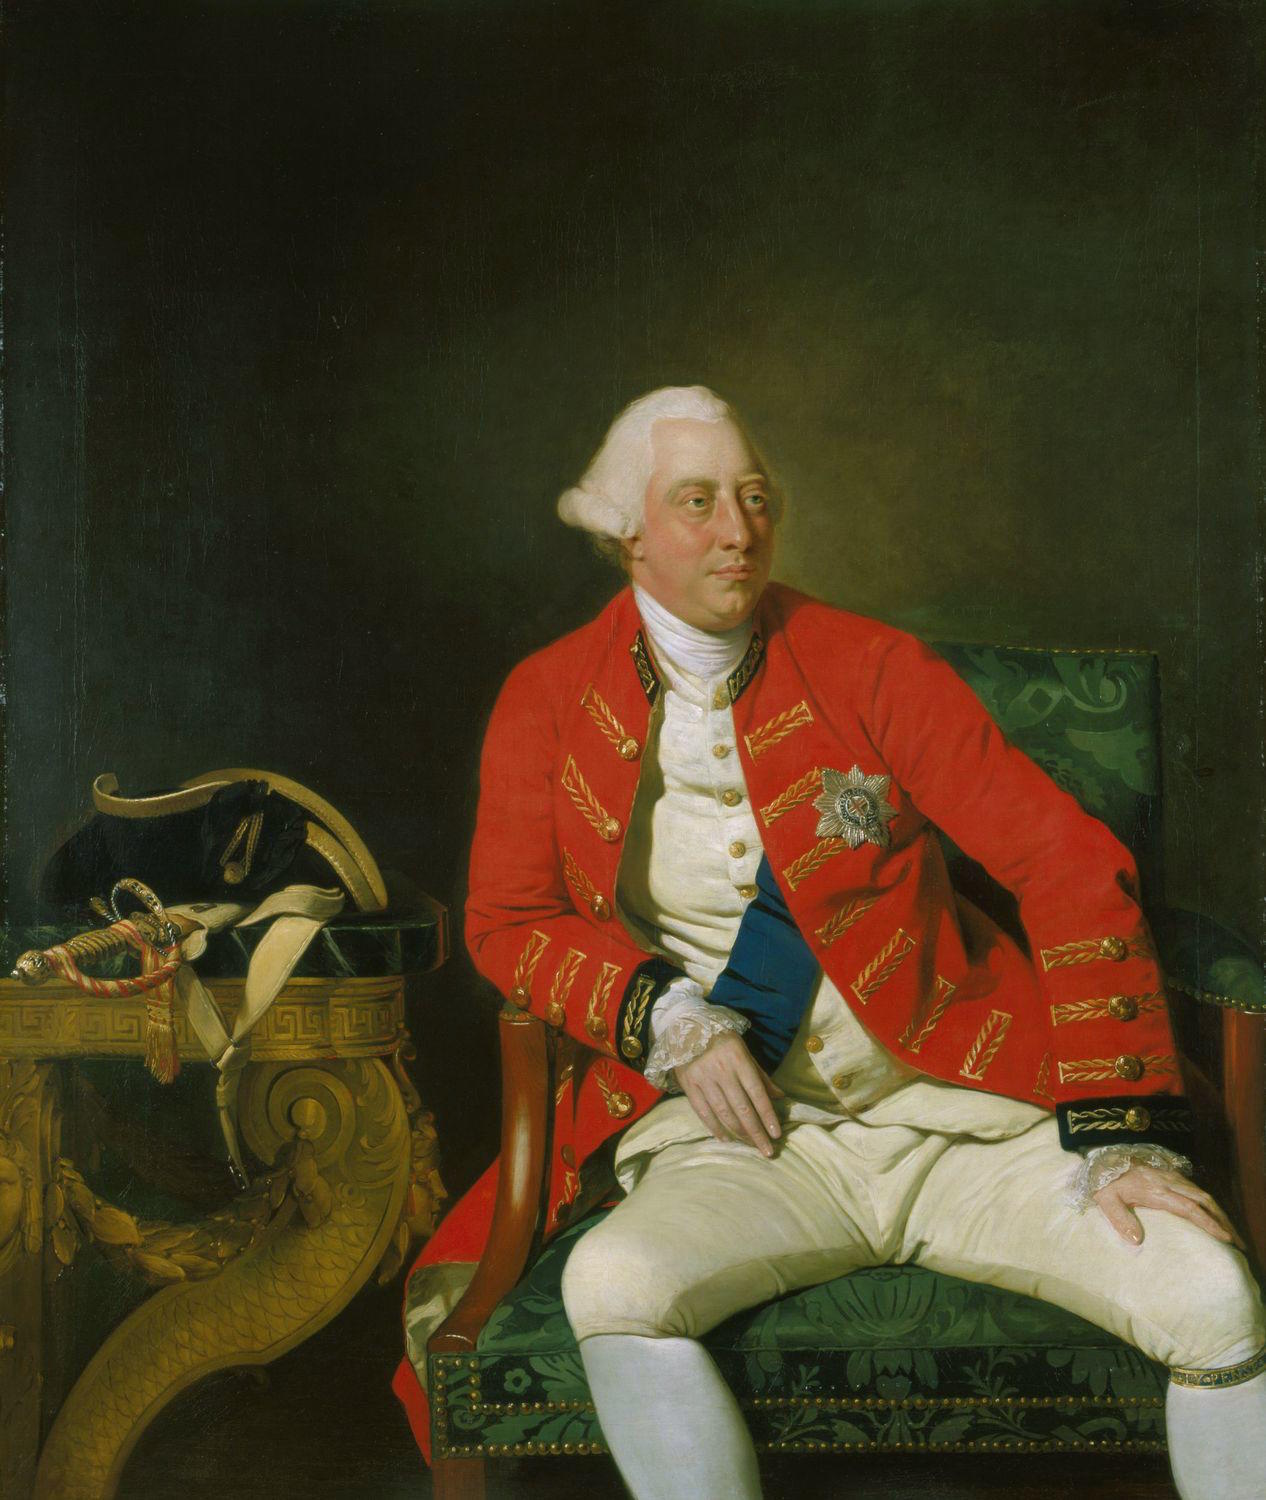 Portrait of King George III, Johann Zoffany, 1771